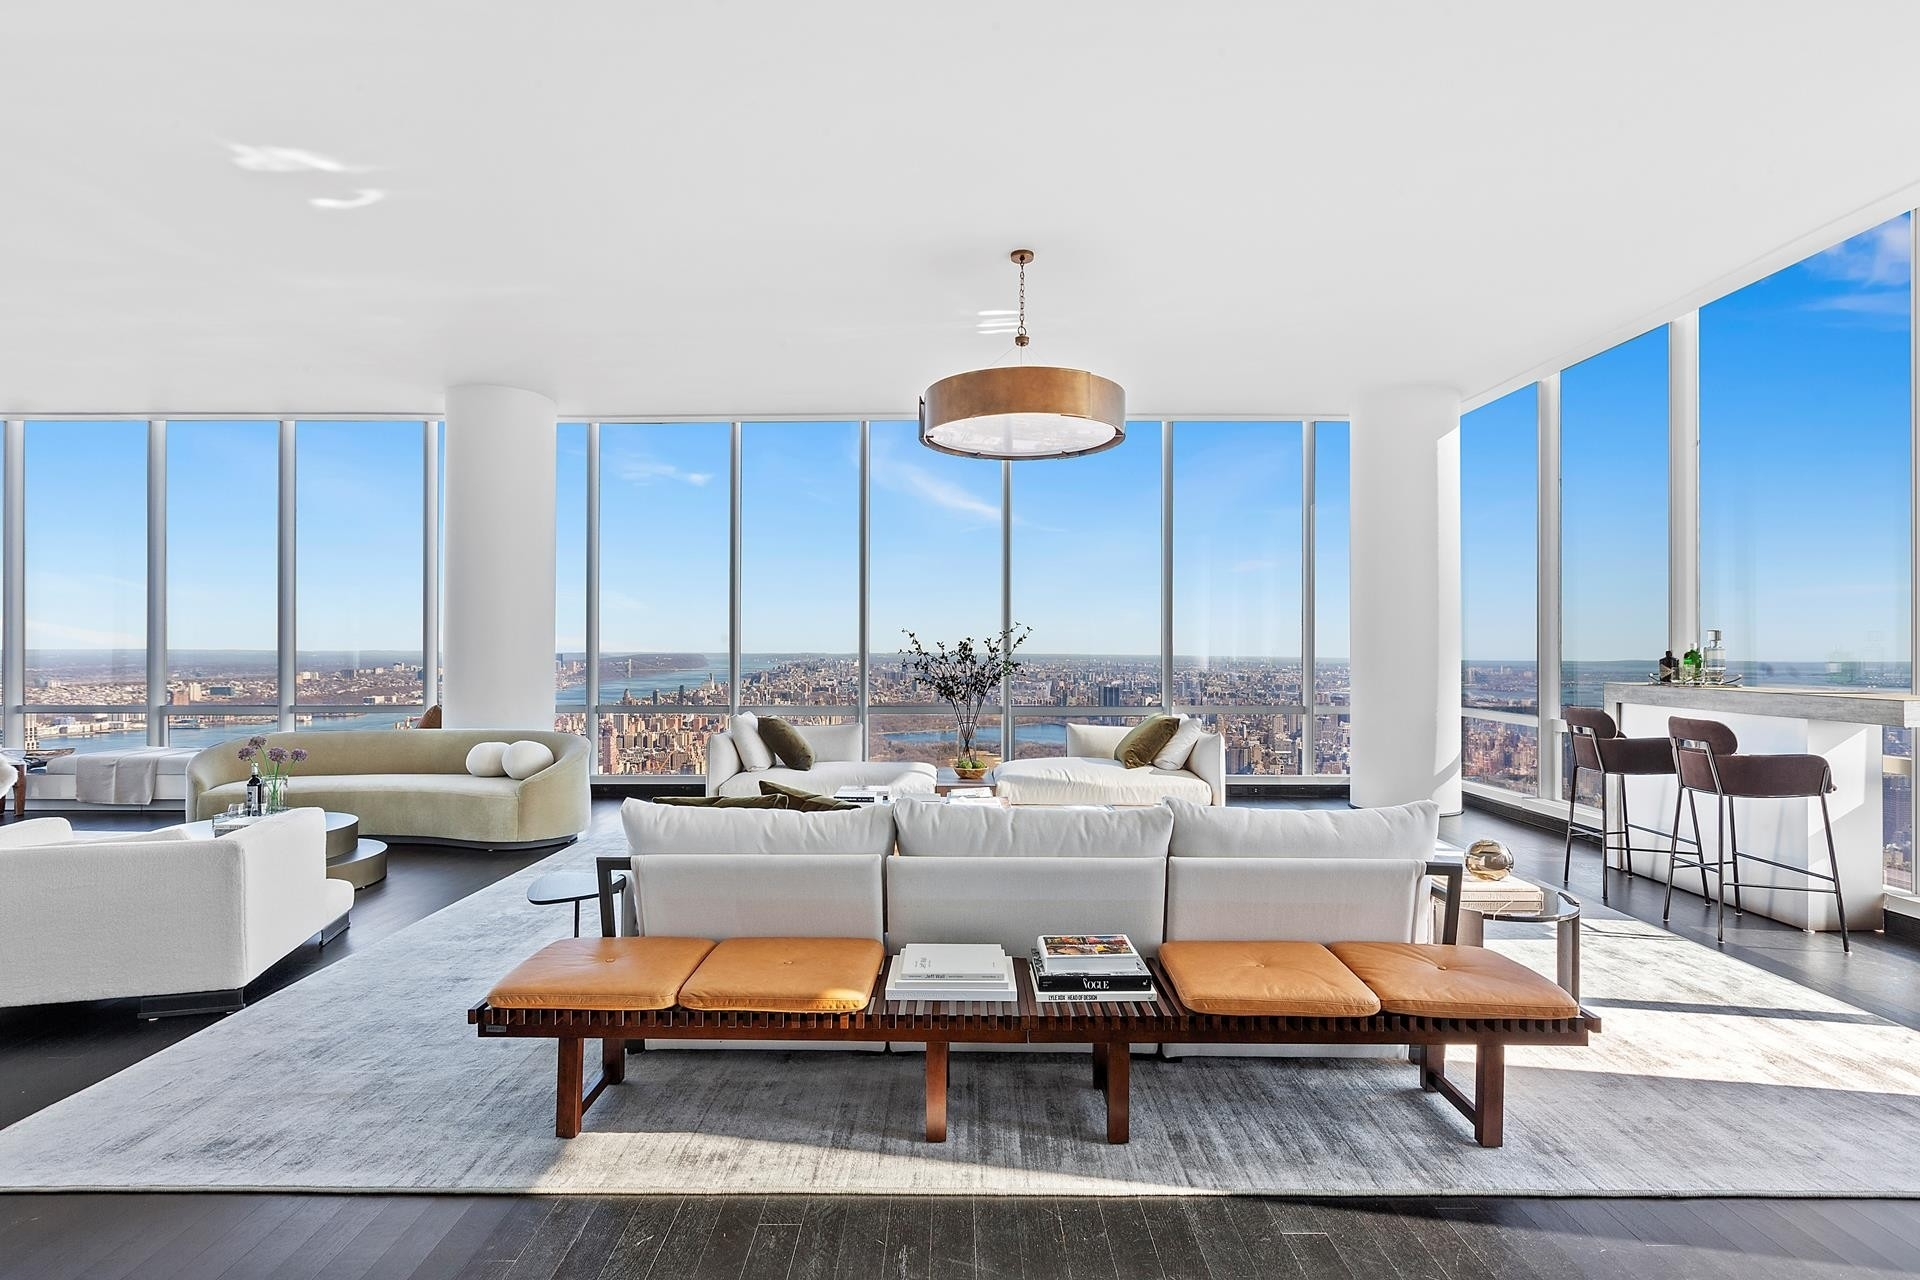 Property at One57, 157 W 57TH ST , 87 Midtown West, New York, NY 10019